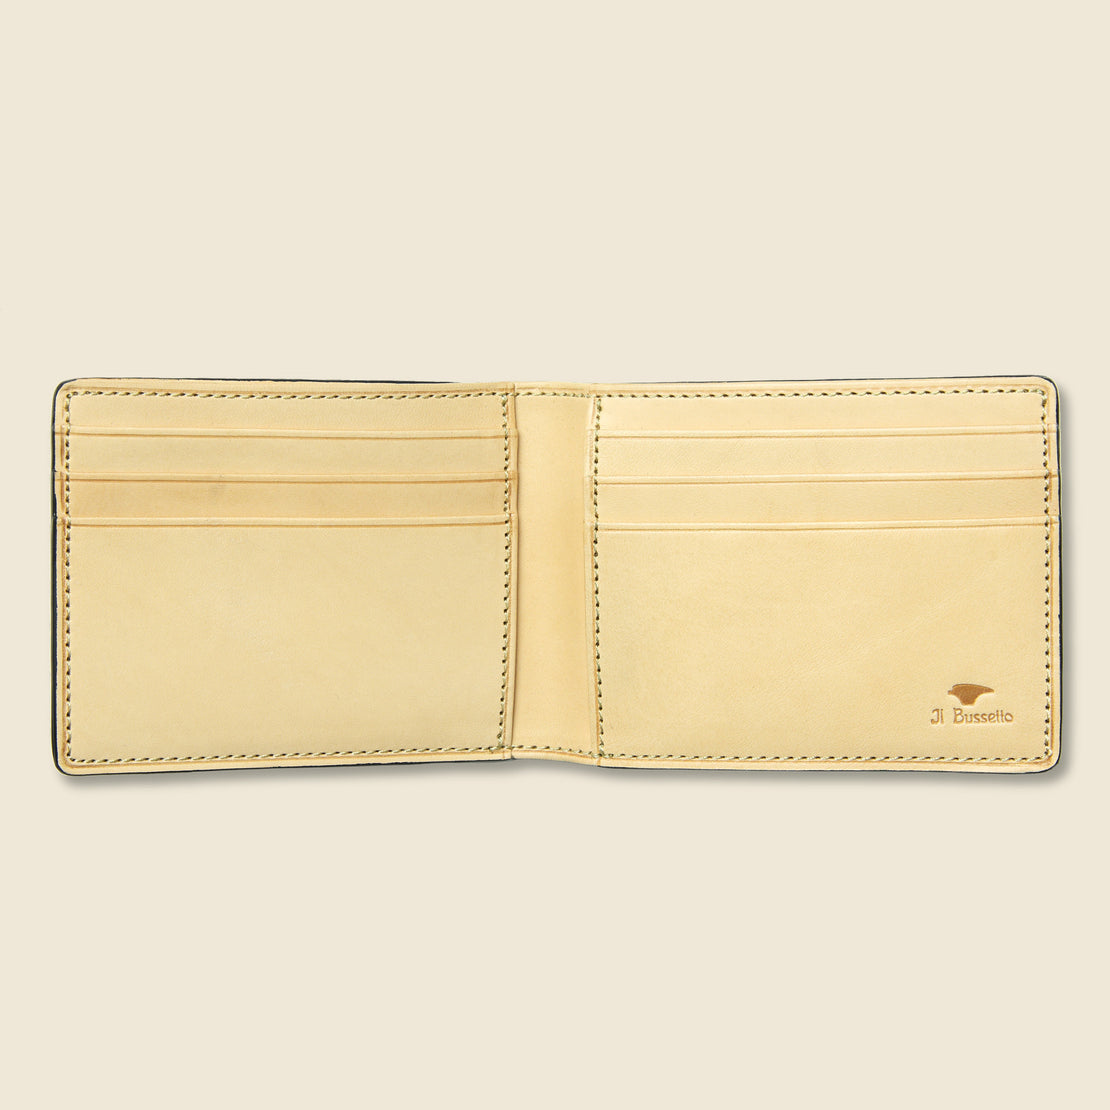 Small Bi-Fold Wallet - Green - Il Bussetto - STAG Provisions - Accessories - Wallets